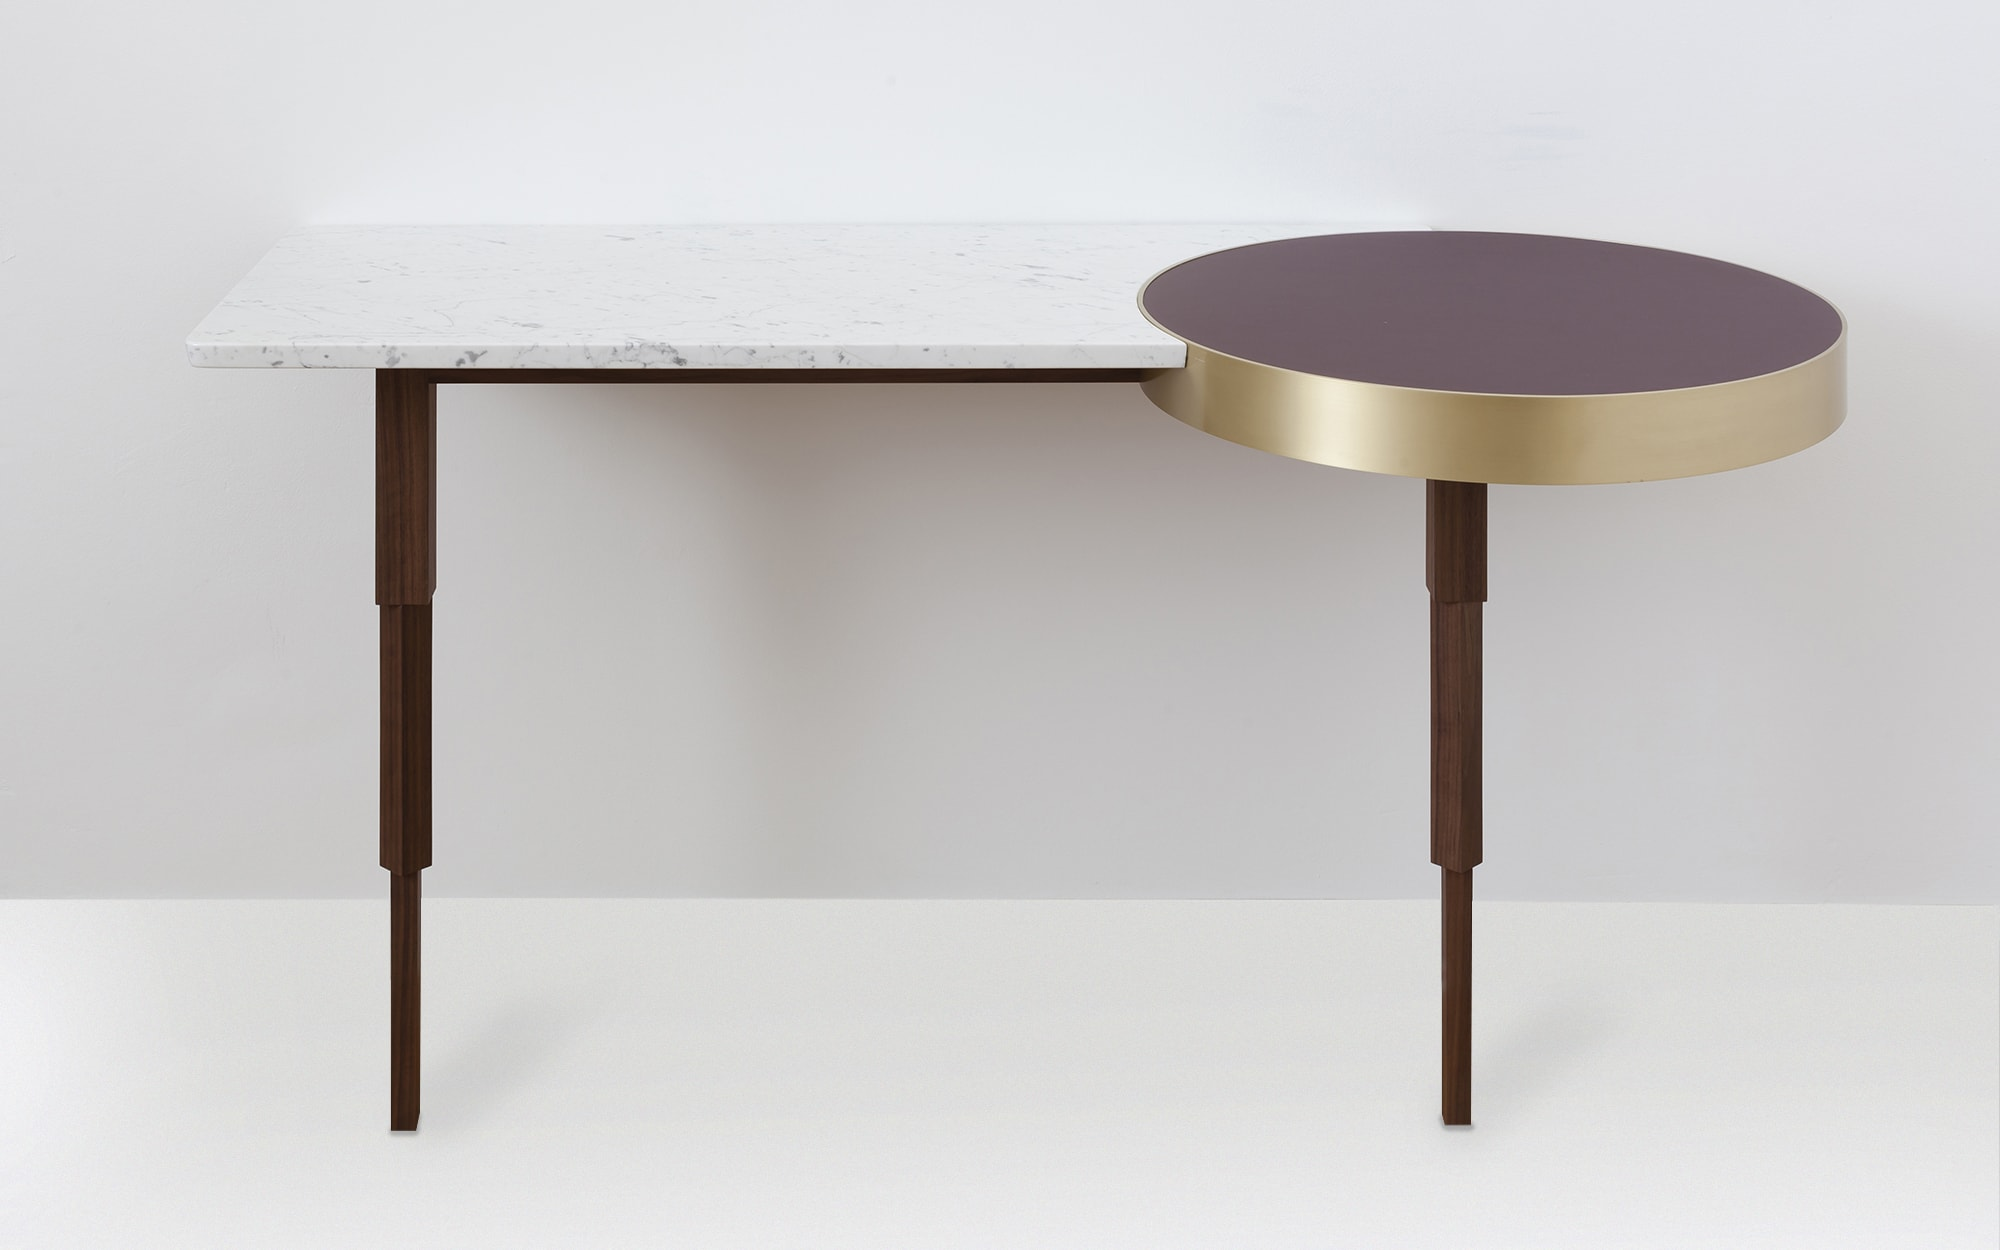 Nipa Jonathan Doshi Levien Chance Encounter Console